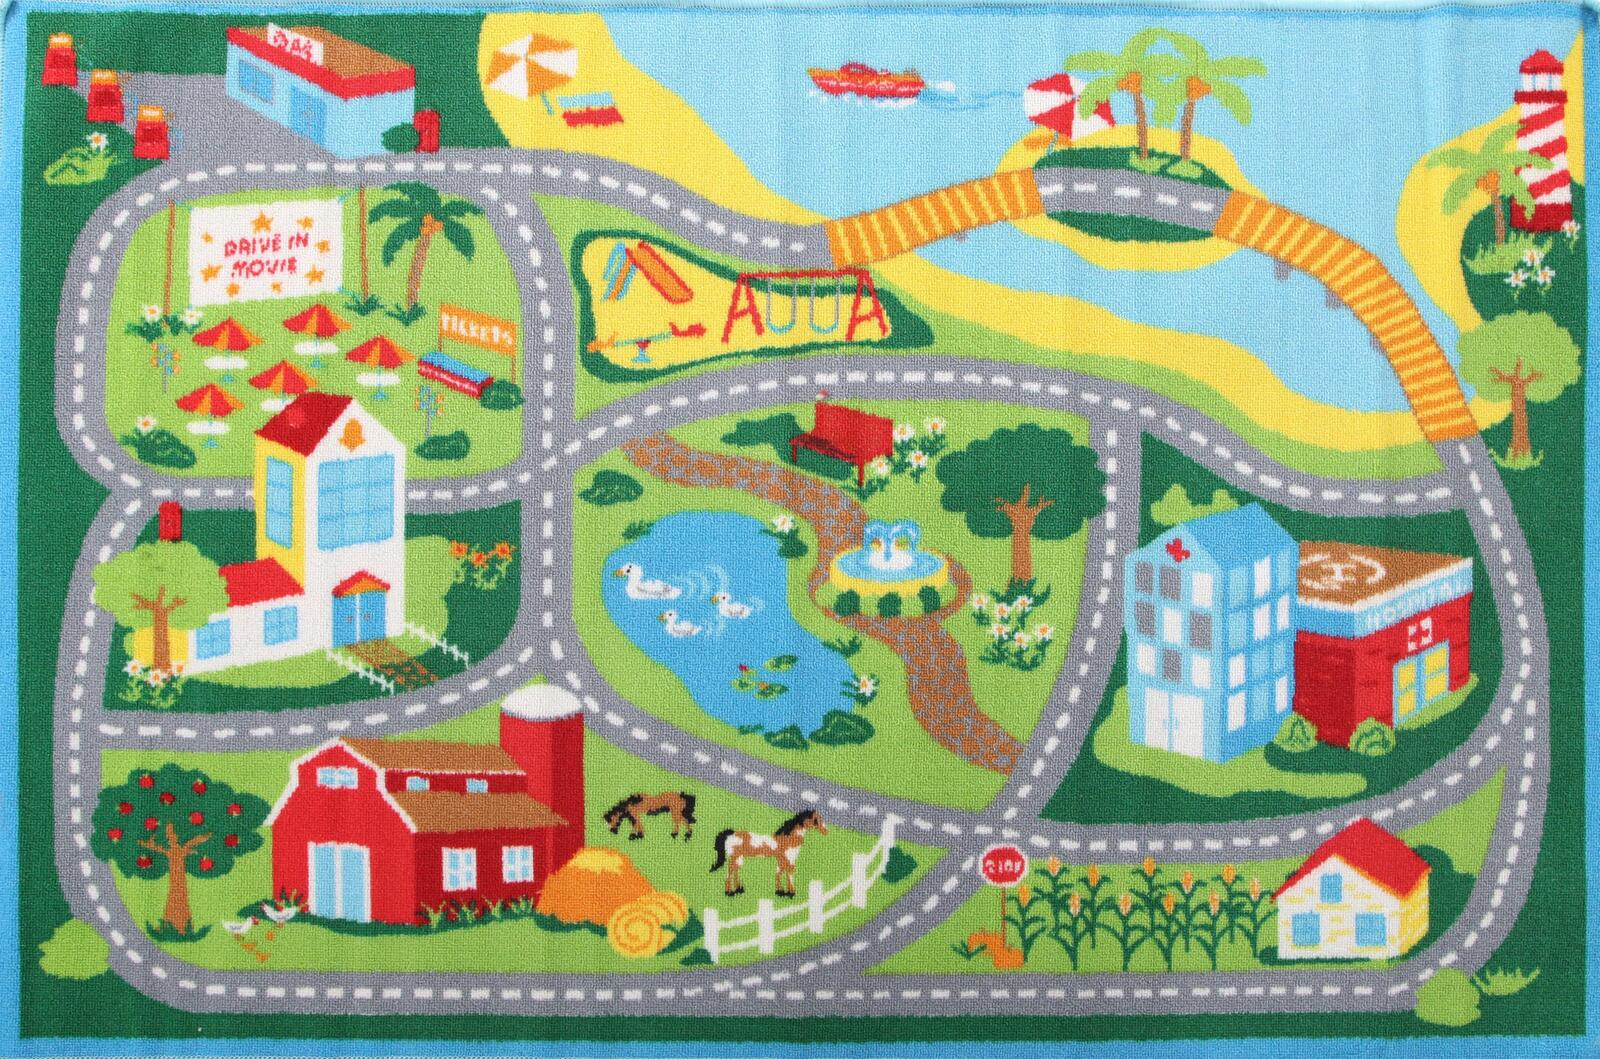 Kids Non Slip Road Map Beach Flooring Rug Area Carpet Blue 150x100cm